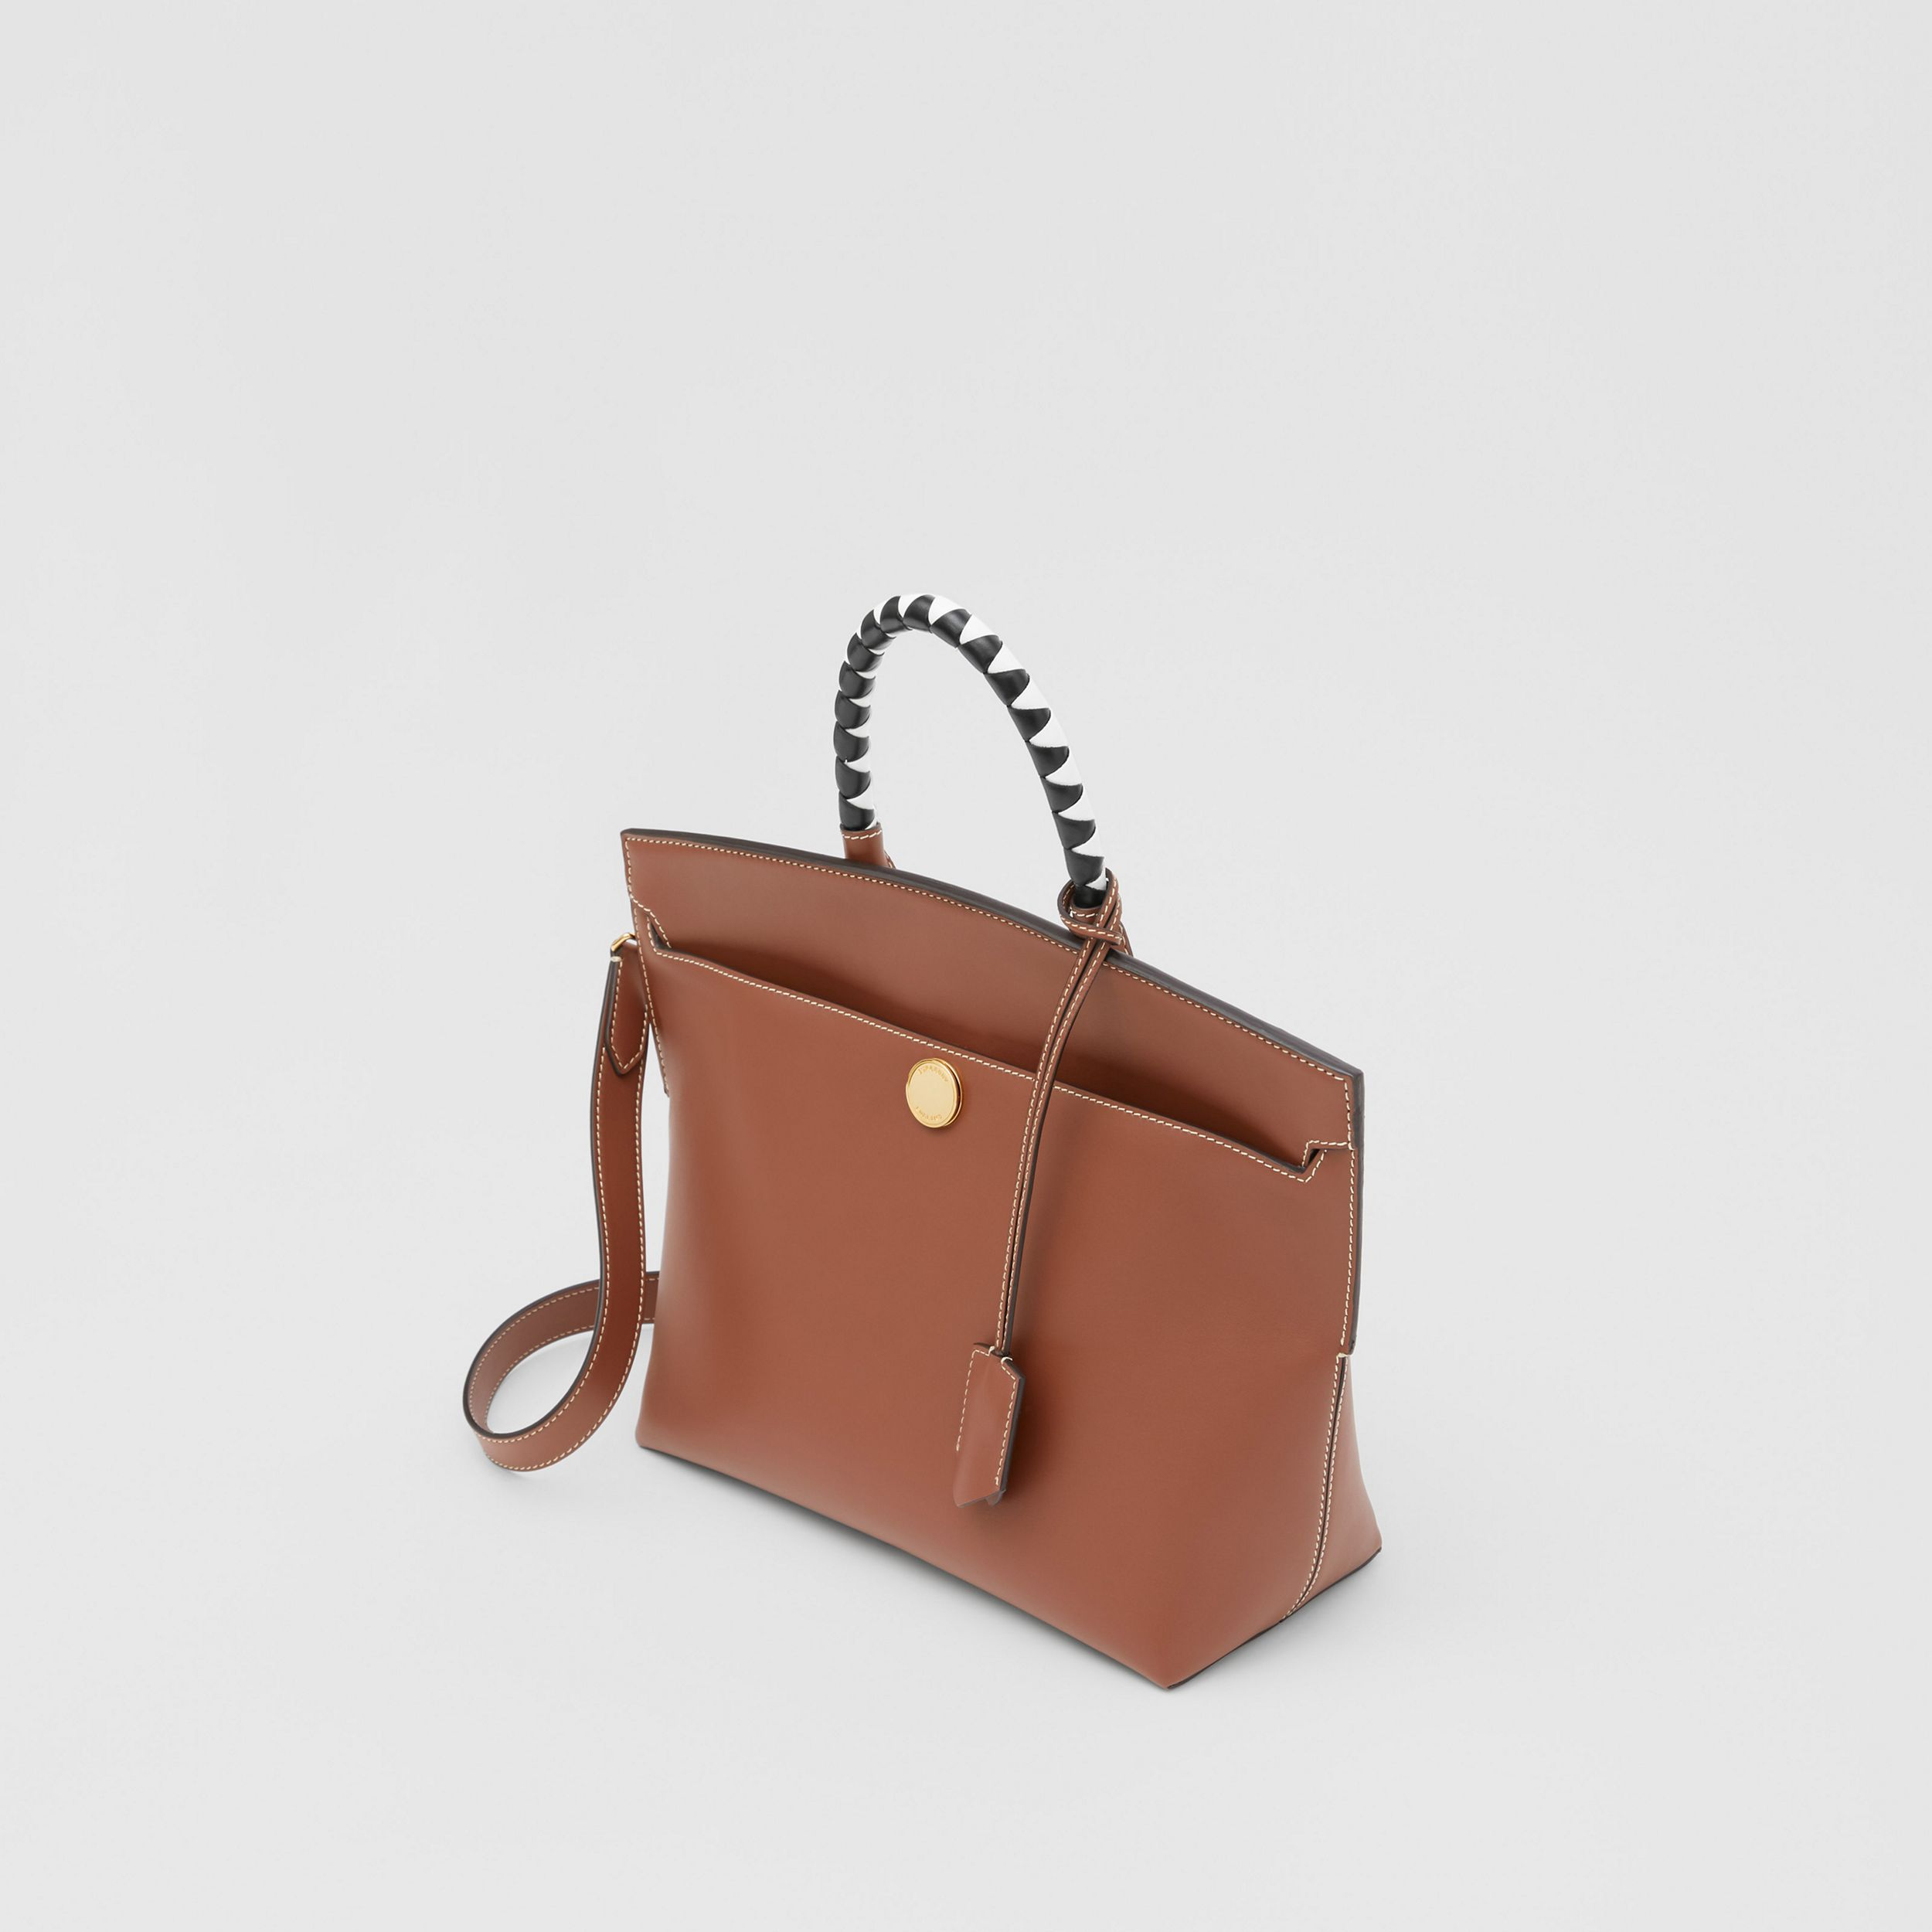 Small Leather Society Top Handle Bag in Tan - Women | Burberry - 4